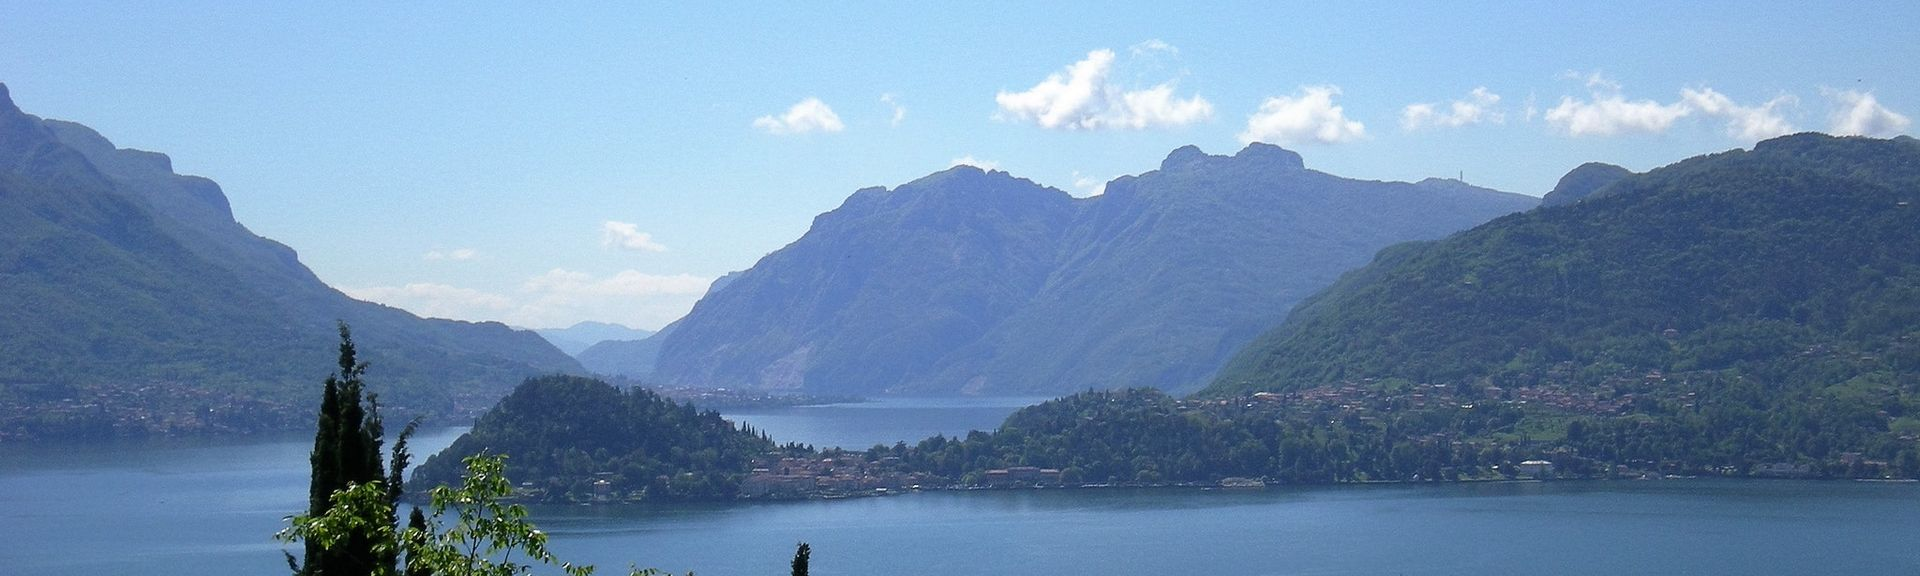 Lake Lugano, Canton of Ticino, Lombardy, Switzerland, Italy